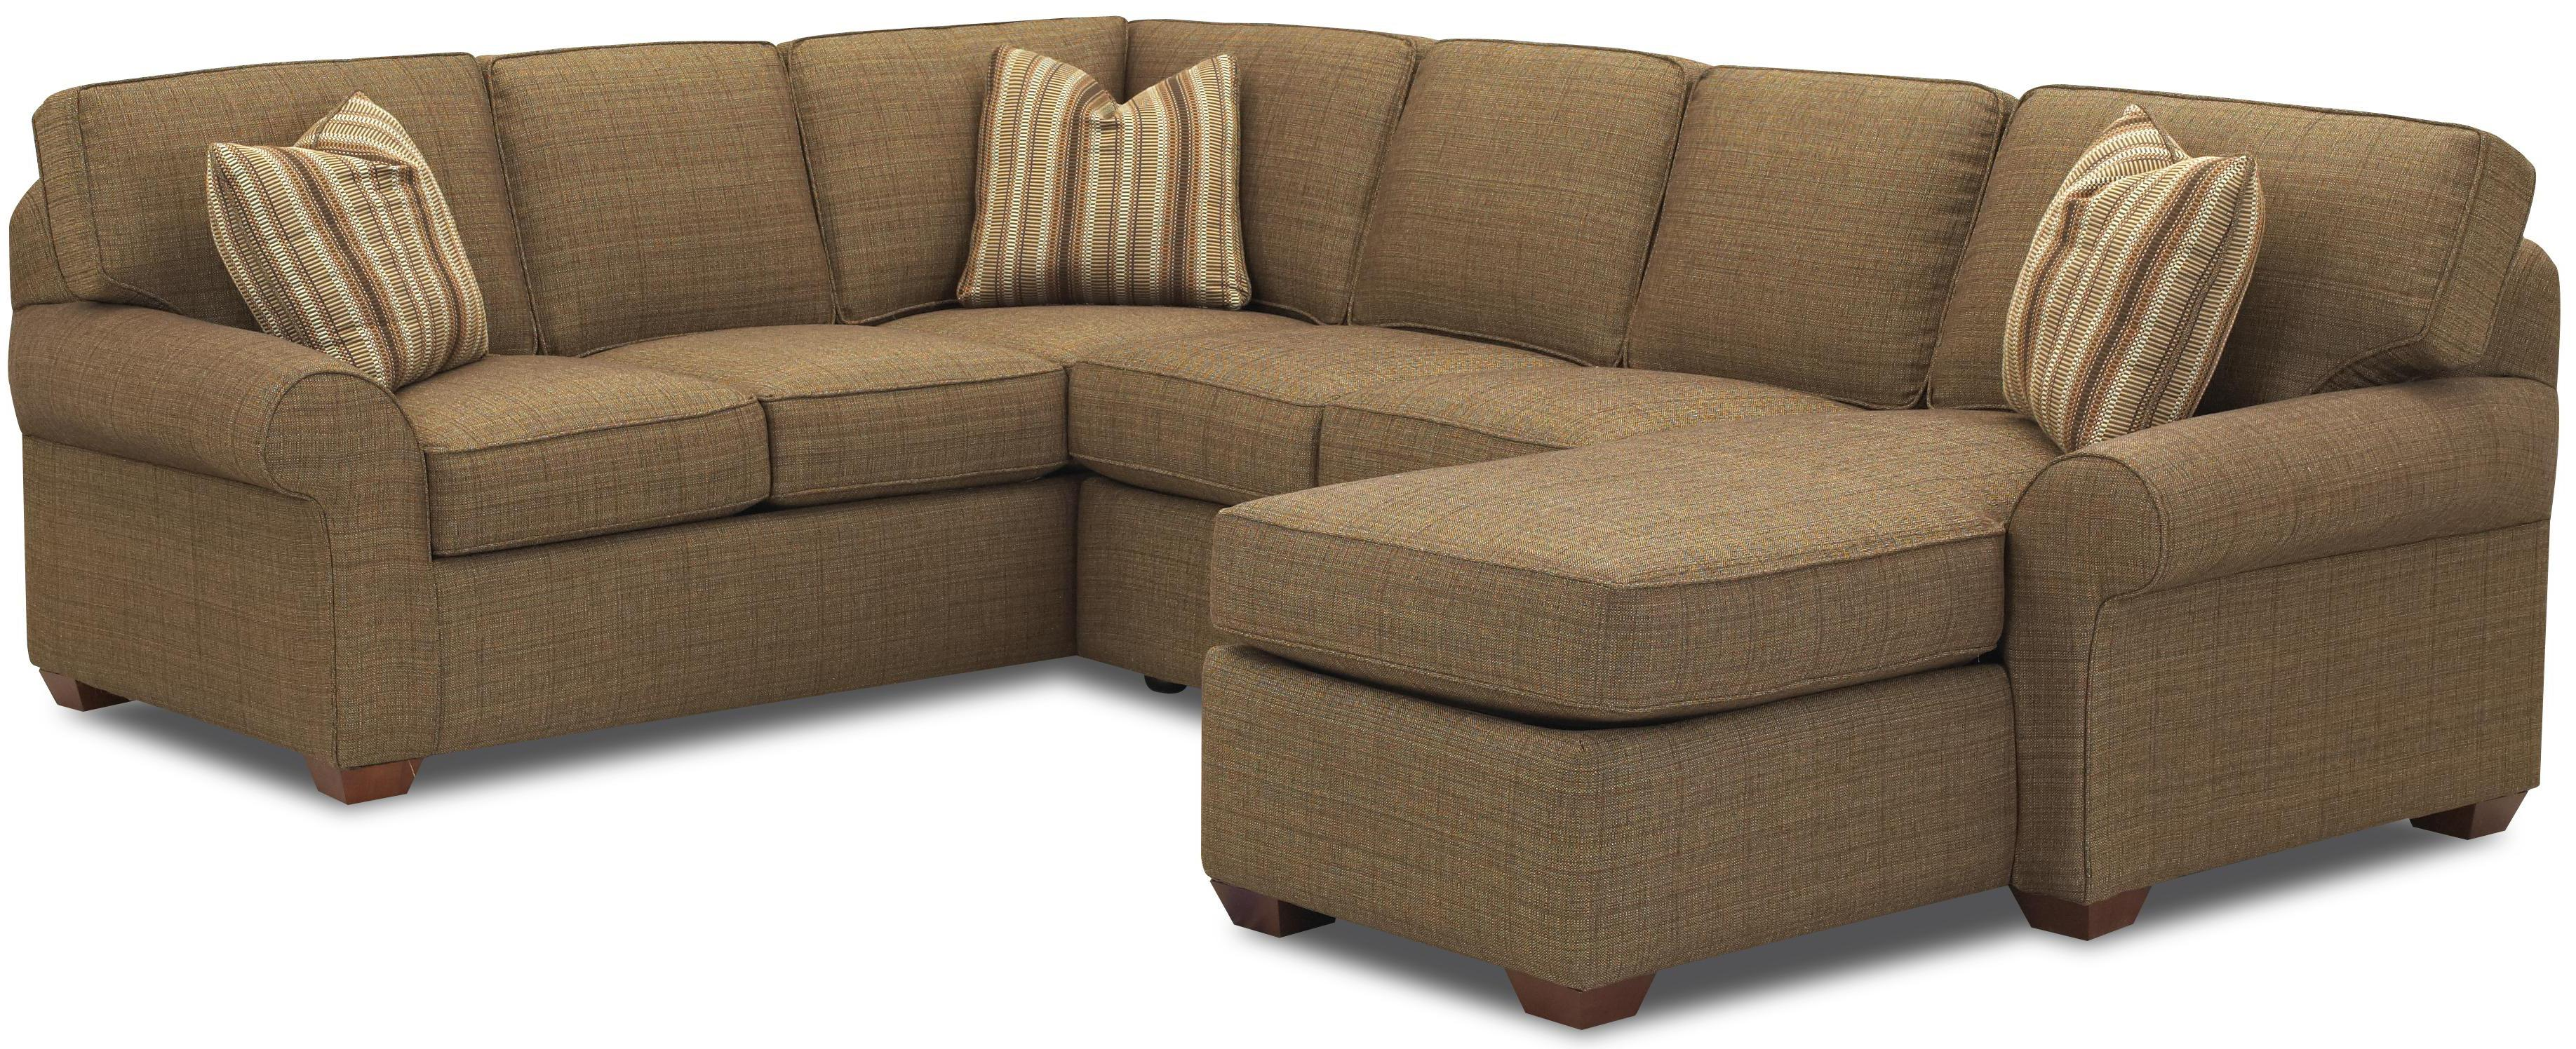 big sale 14e68 0cd2b Sectional Sofa Group with Right Chaise Lounge by Klaussner ...